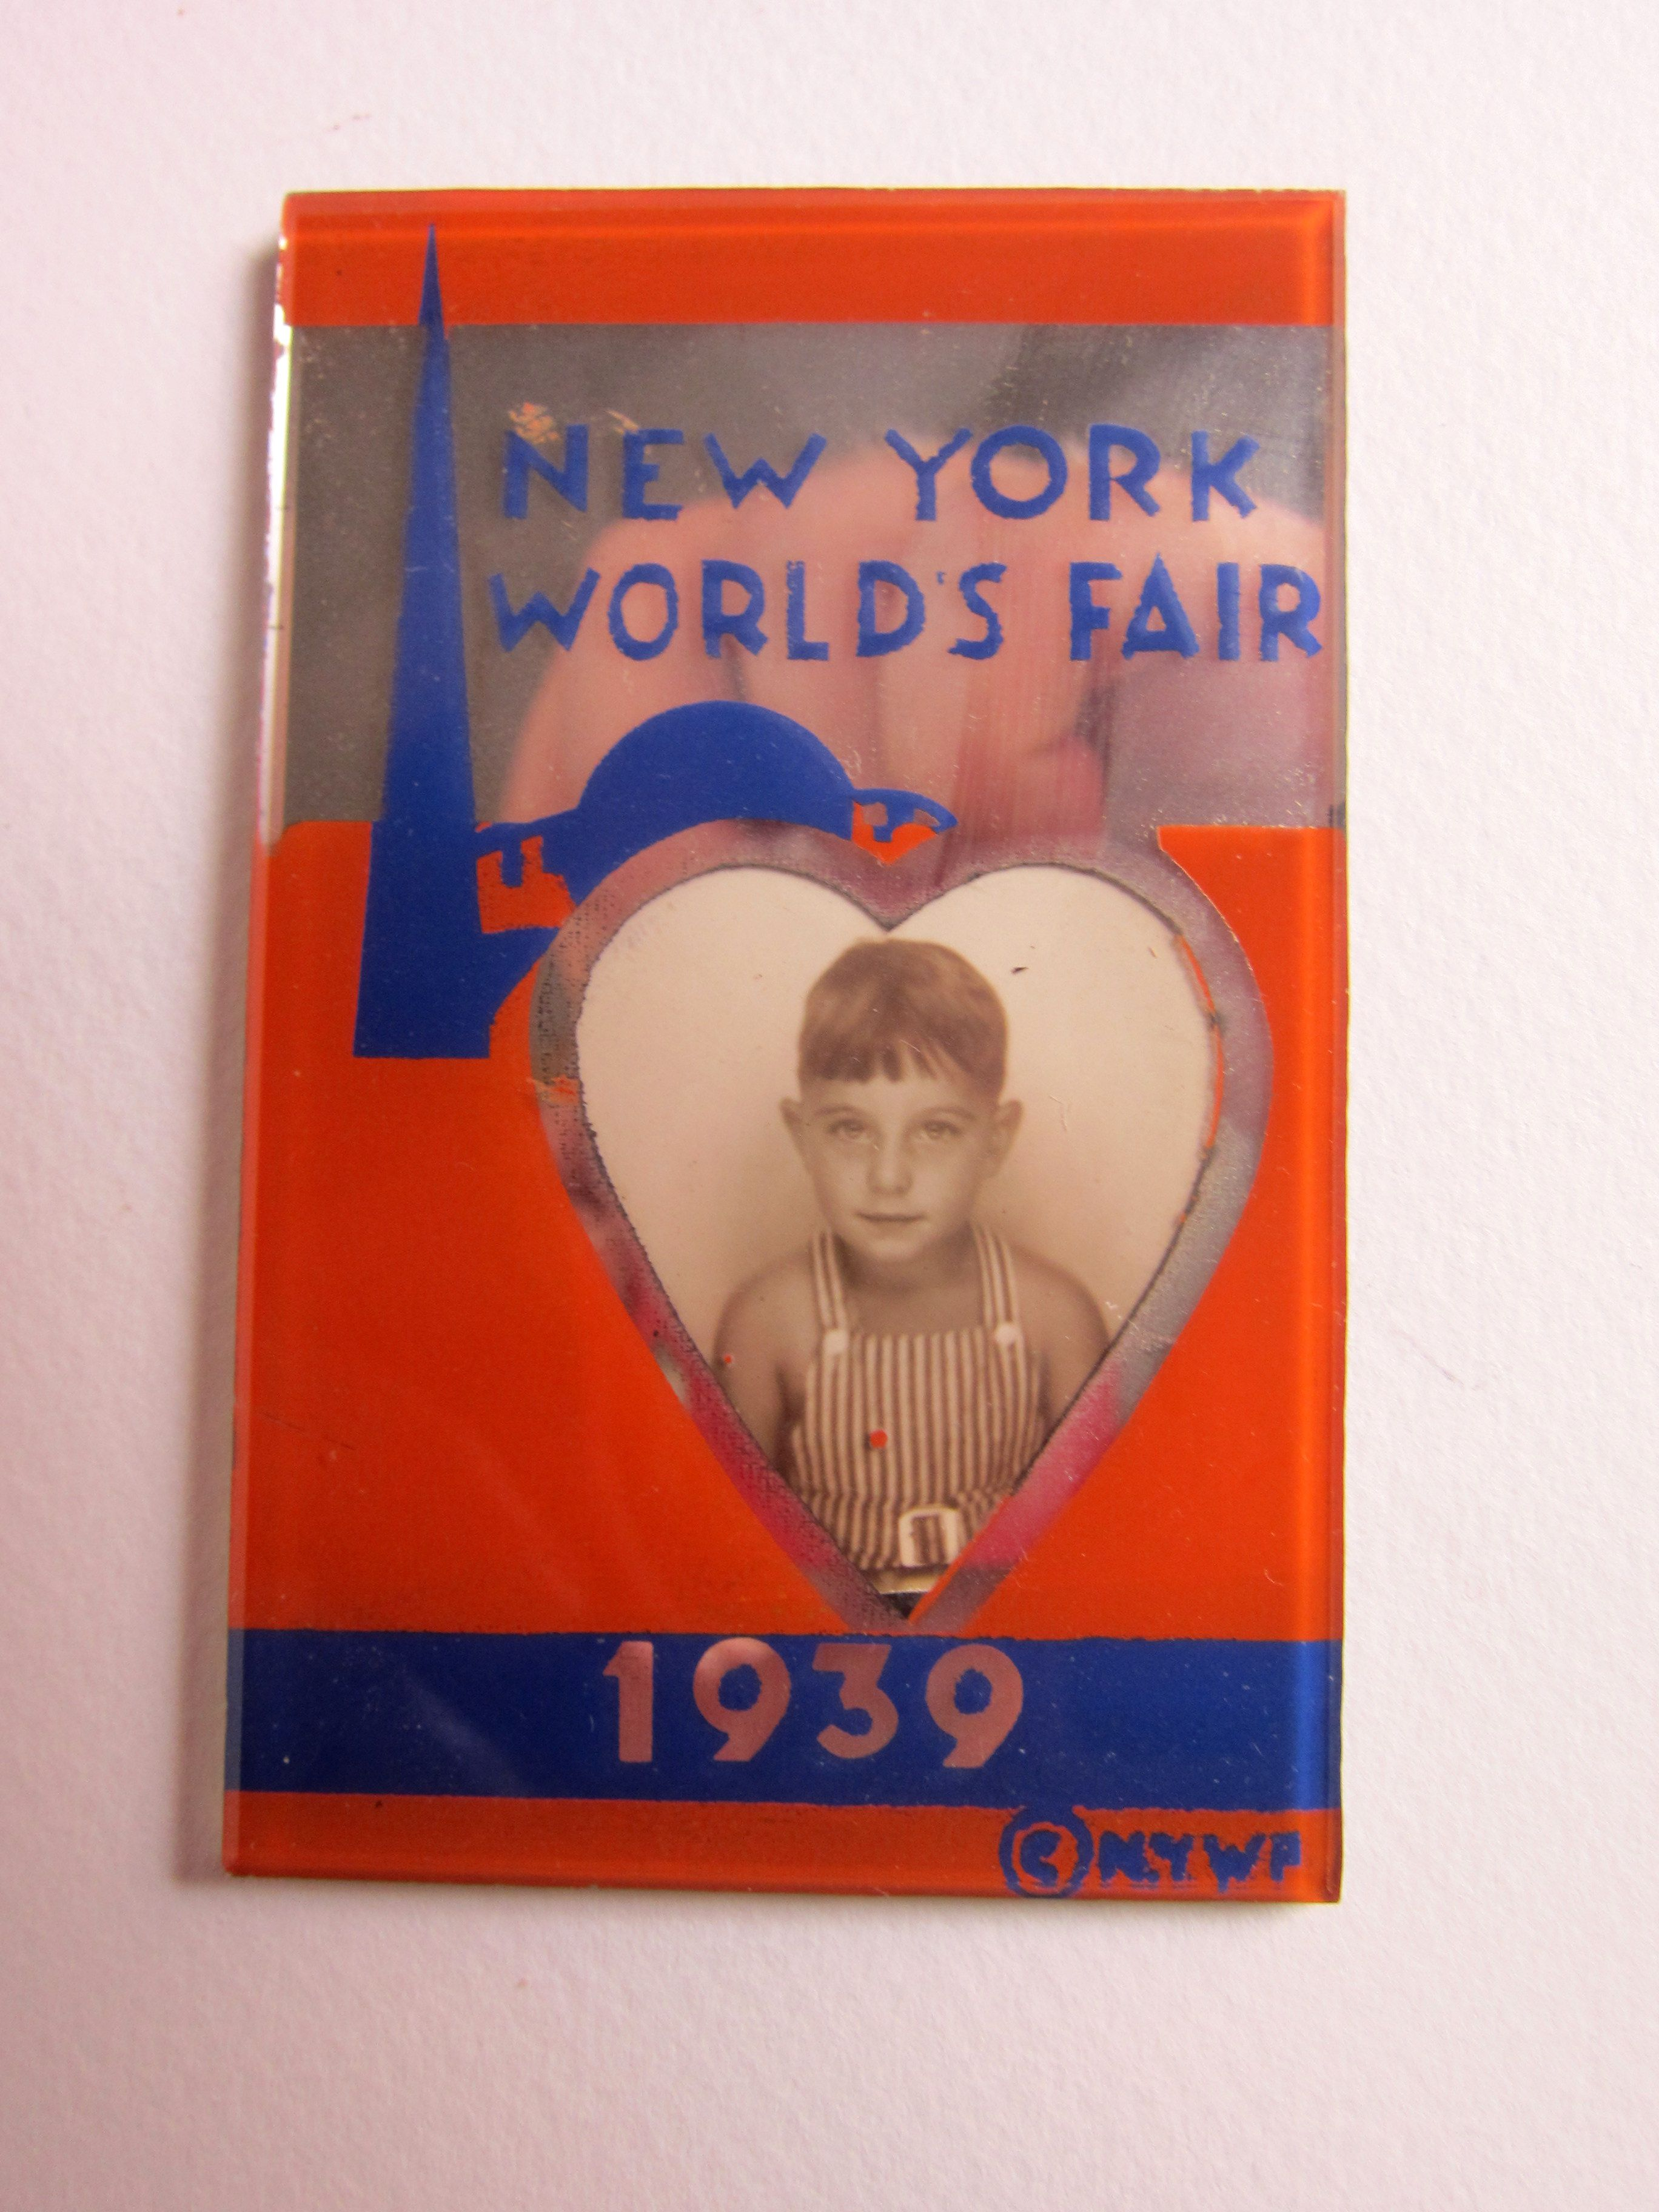 1939 New York World's Fair Mirror (With Images)